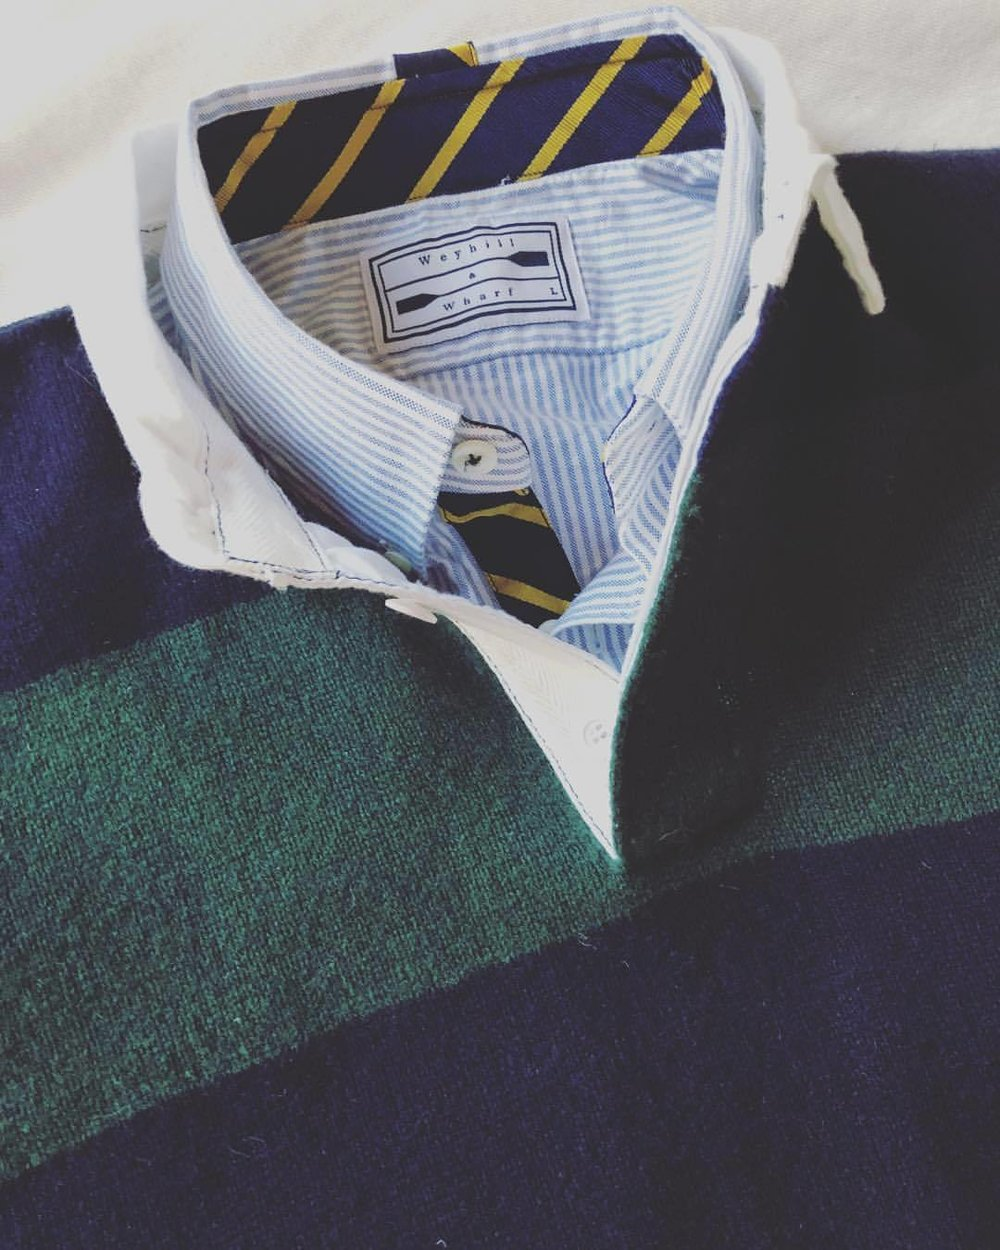 The Preparatory Oxford in Navy & Yellow Wide Repp in University Stripe